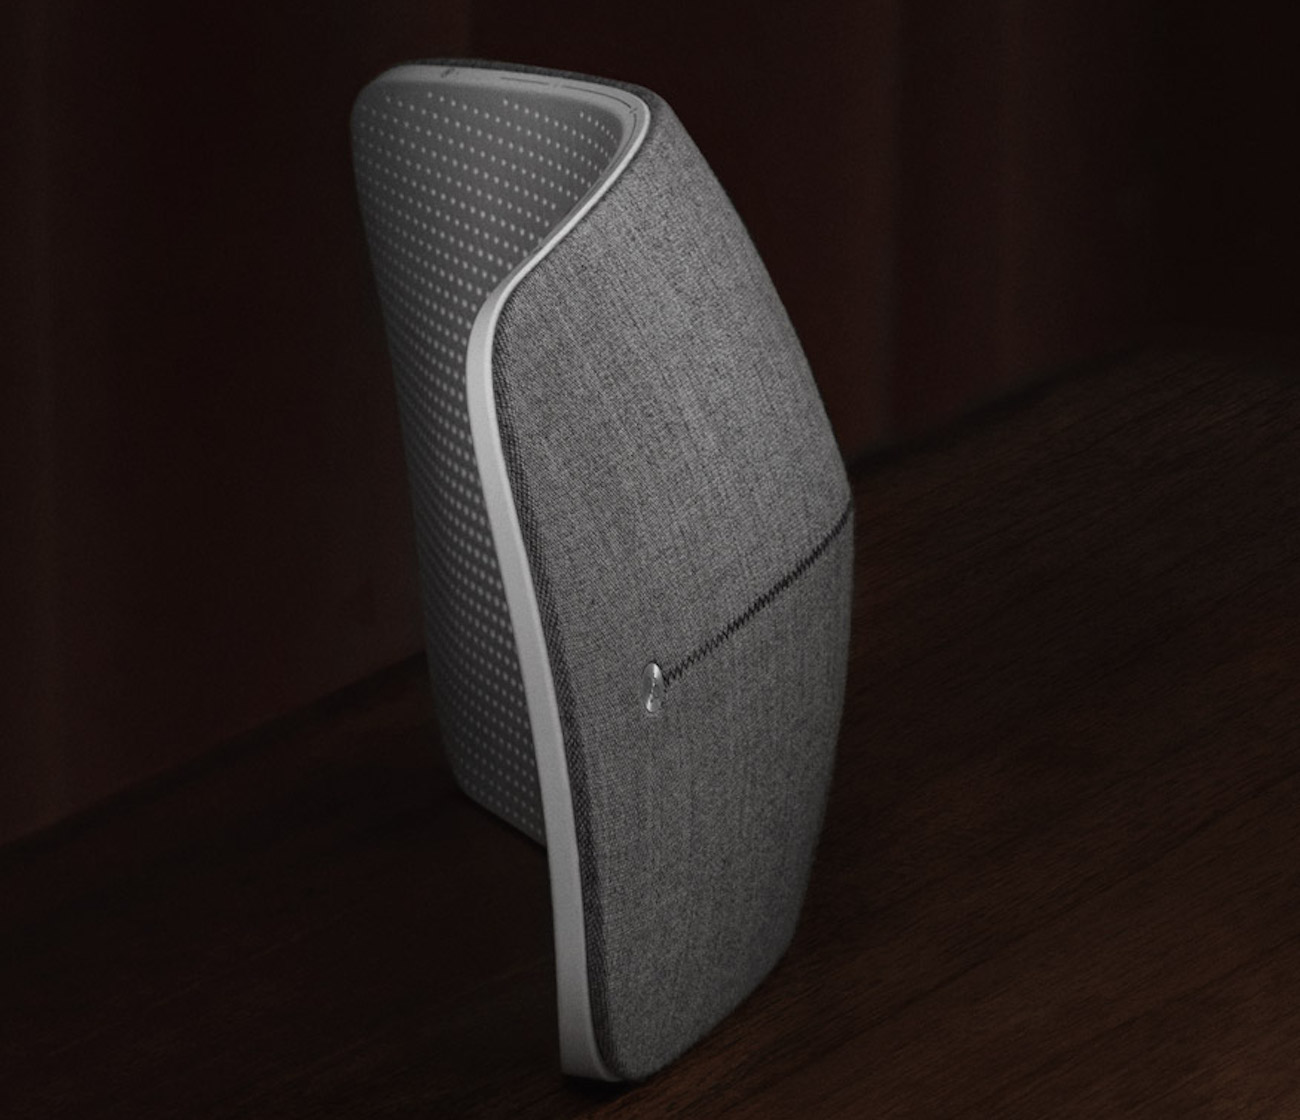 BeoPlay A6 Bluetooth Music System